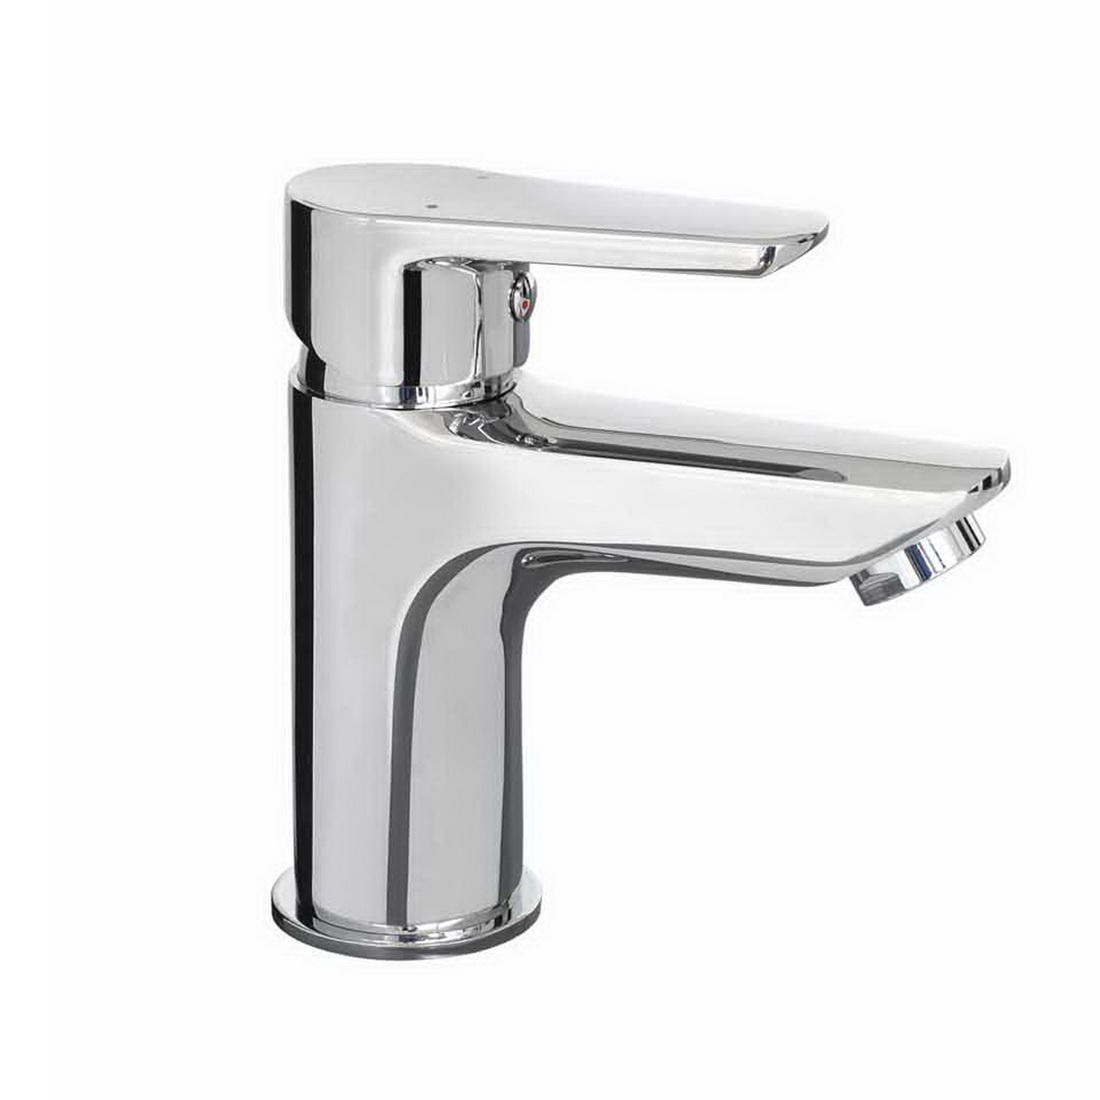 Saluto All Pressure Basin Mixer Chrome